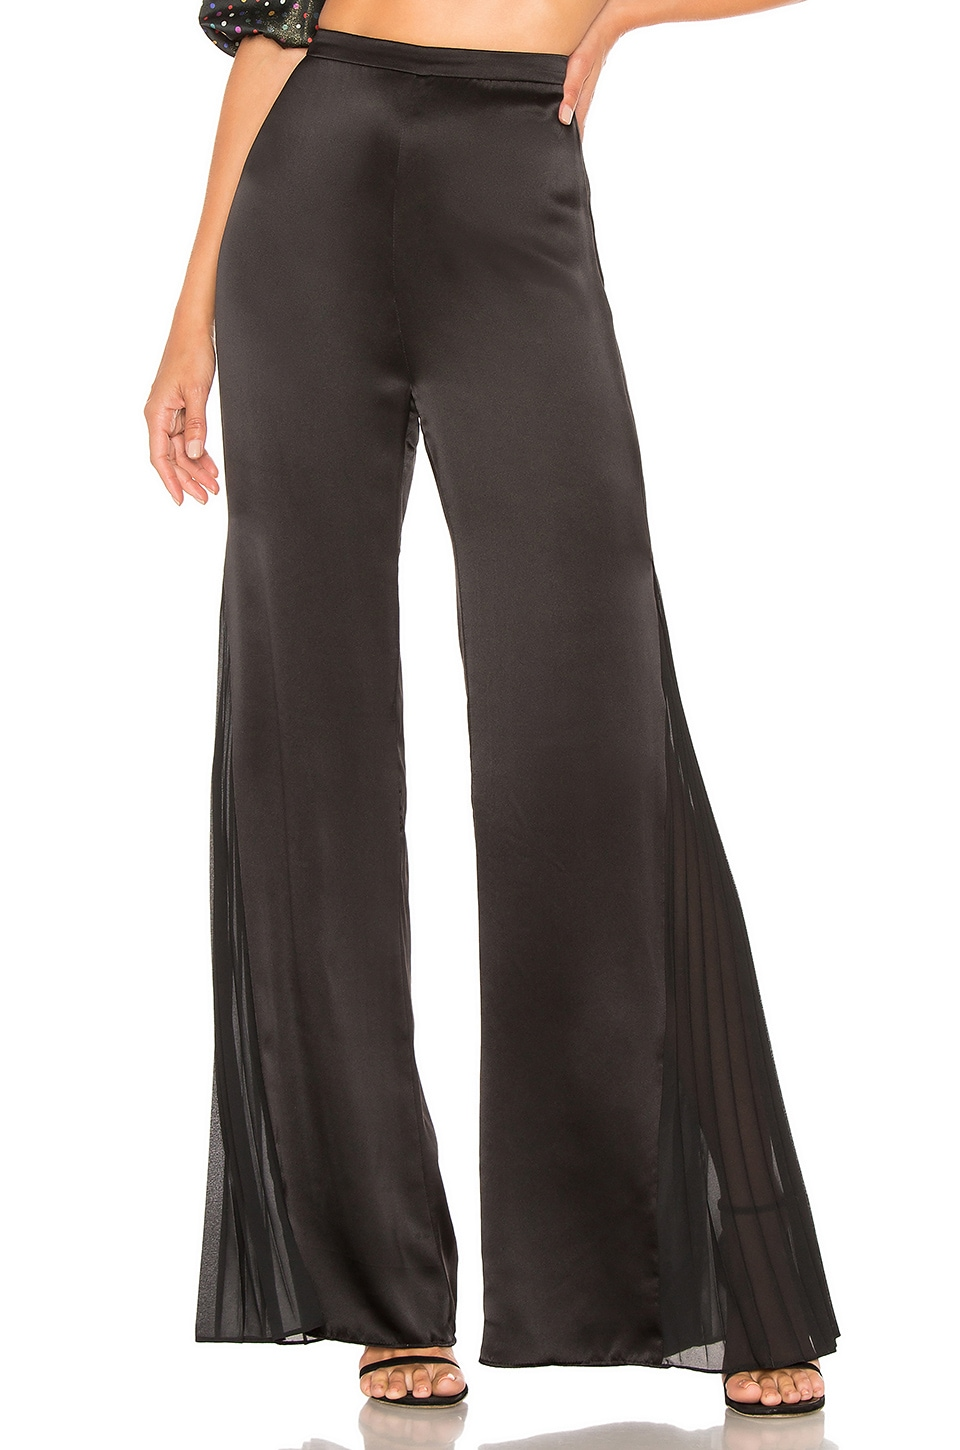 AMUR Donna Pant in Black